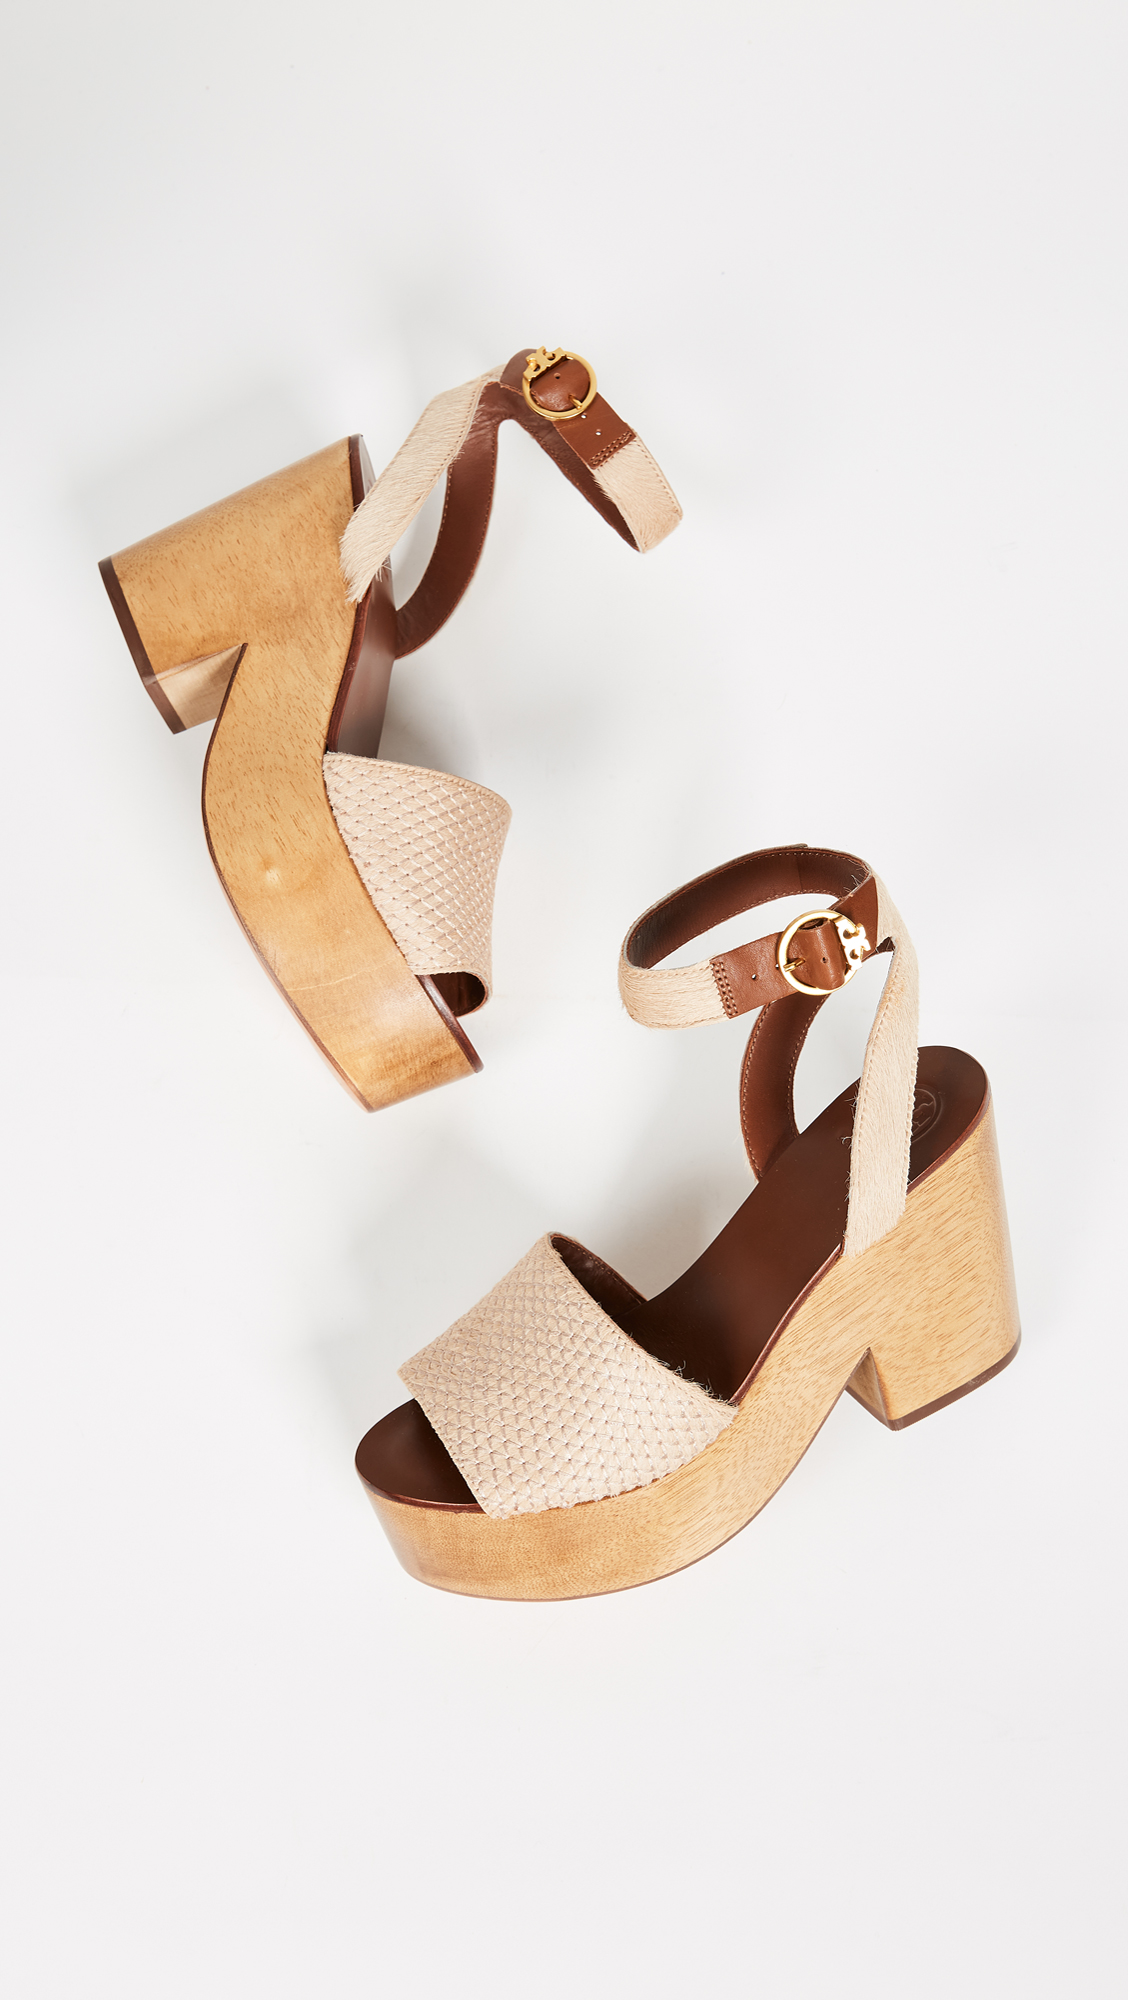 851c7346159 Tory Burch Camilla 100mm Sandals